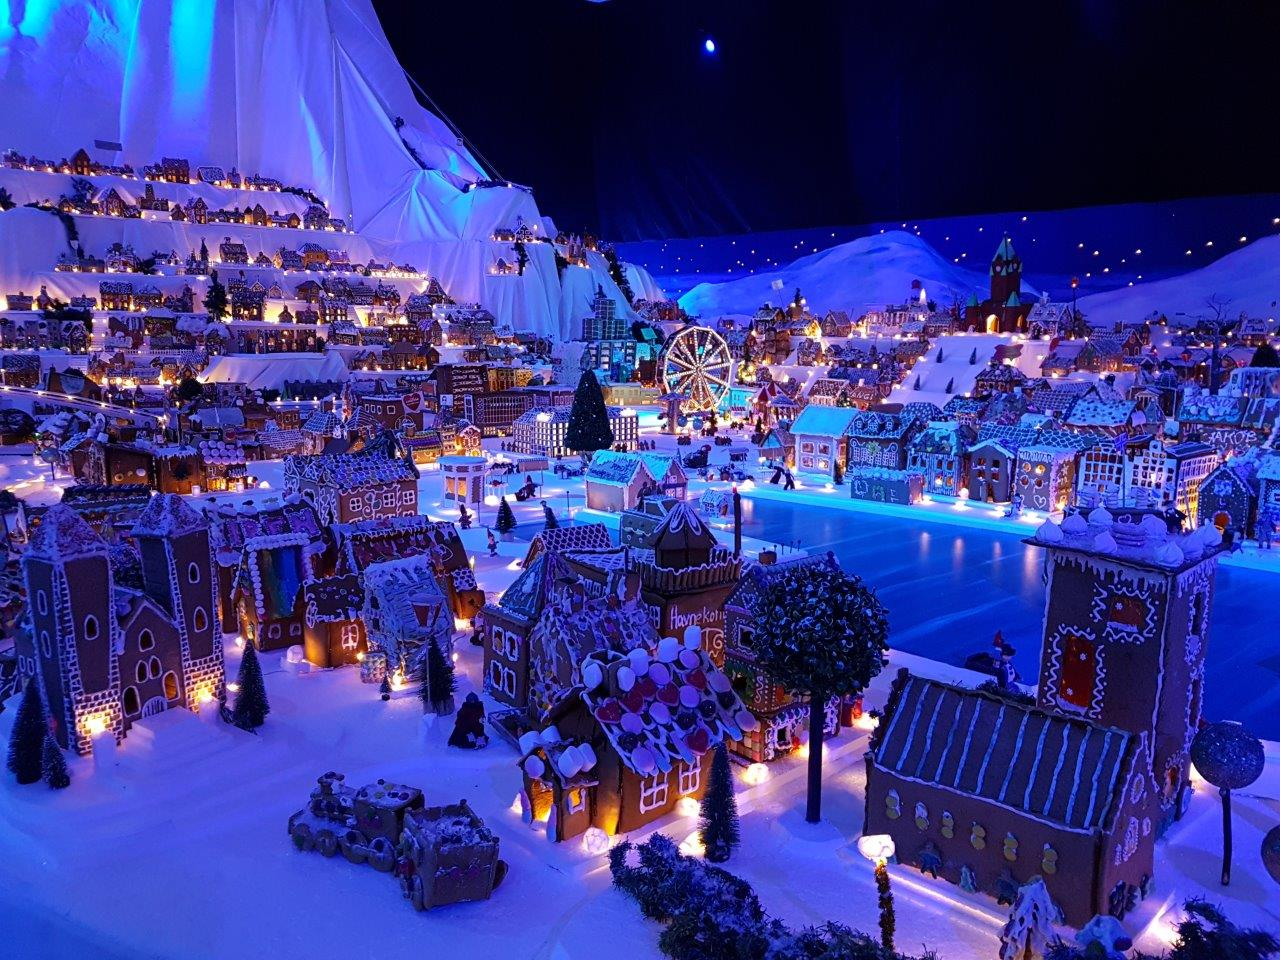 rosenkrantz-tower-and-st-marys-church-the-worlds-largest-gingerbread-town-in-bergen-norway Christmas Advents Calendar Inka Tour Largest Gingerbread Town